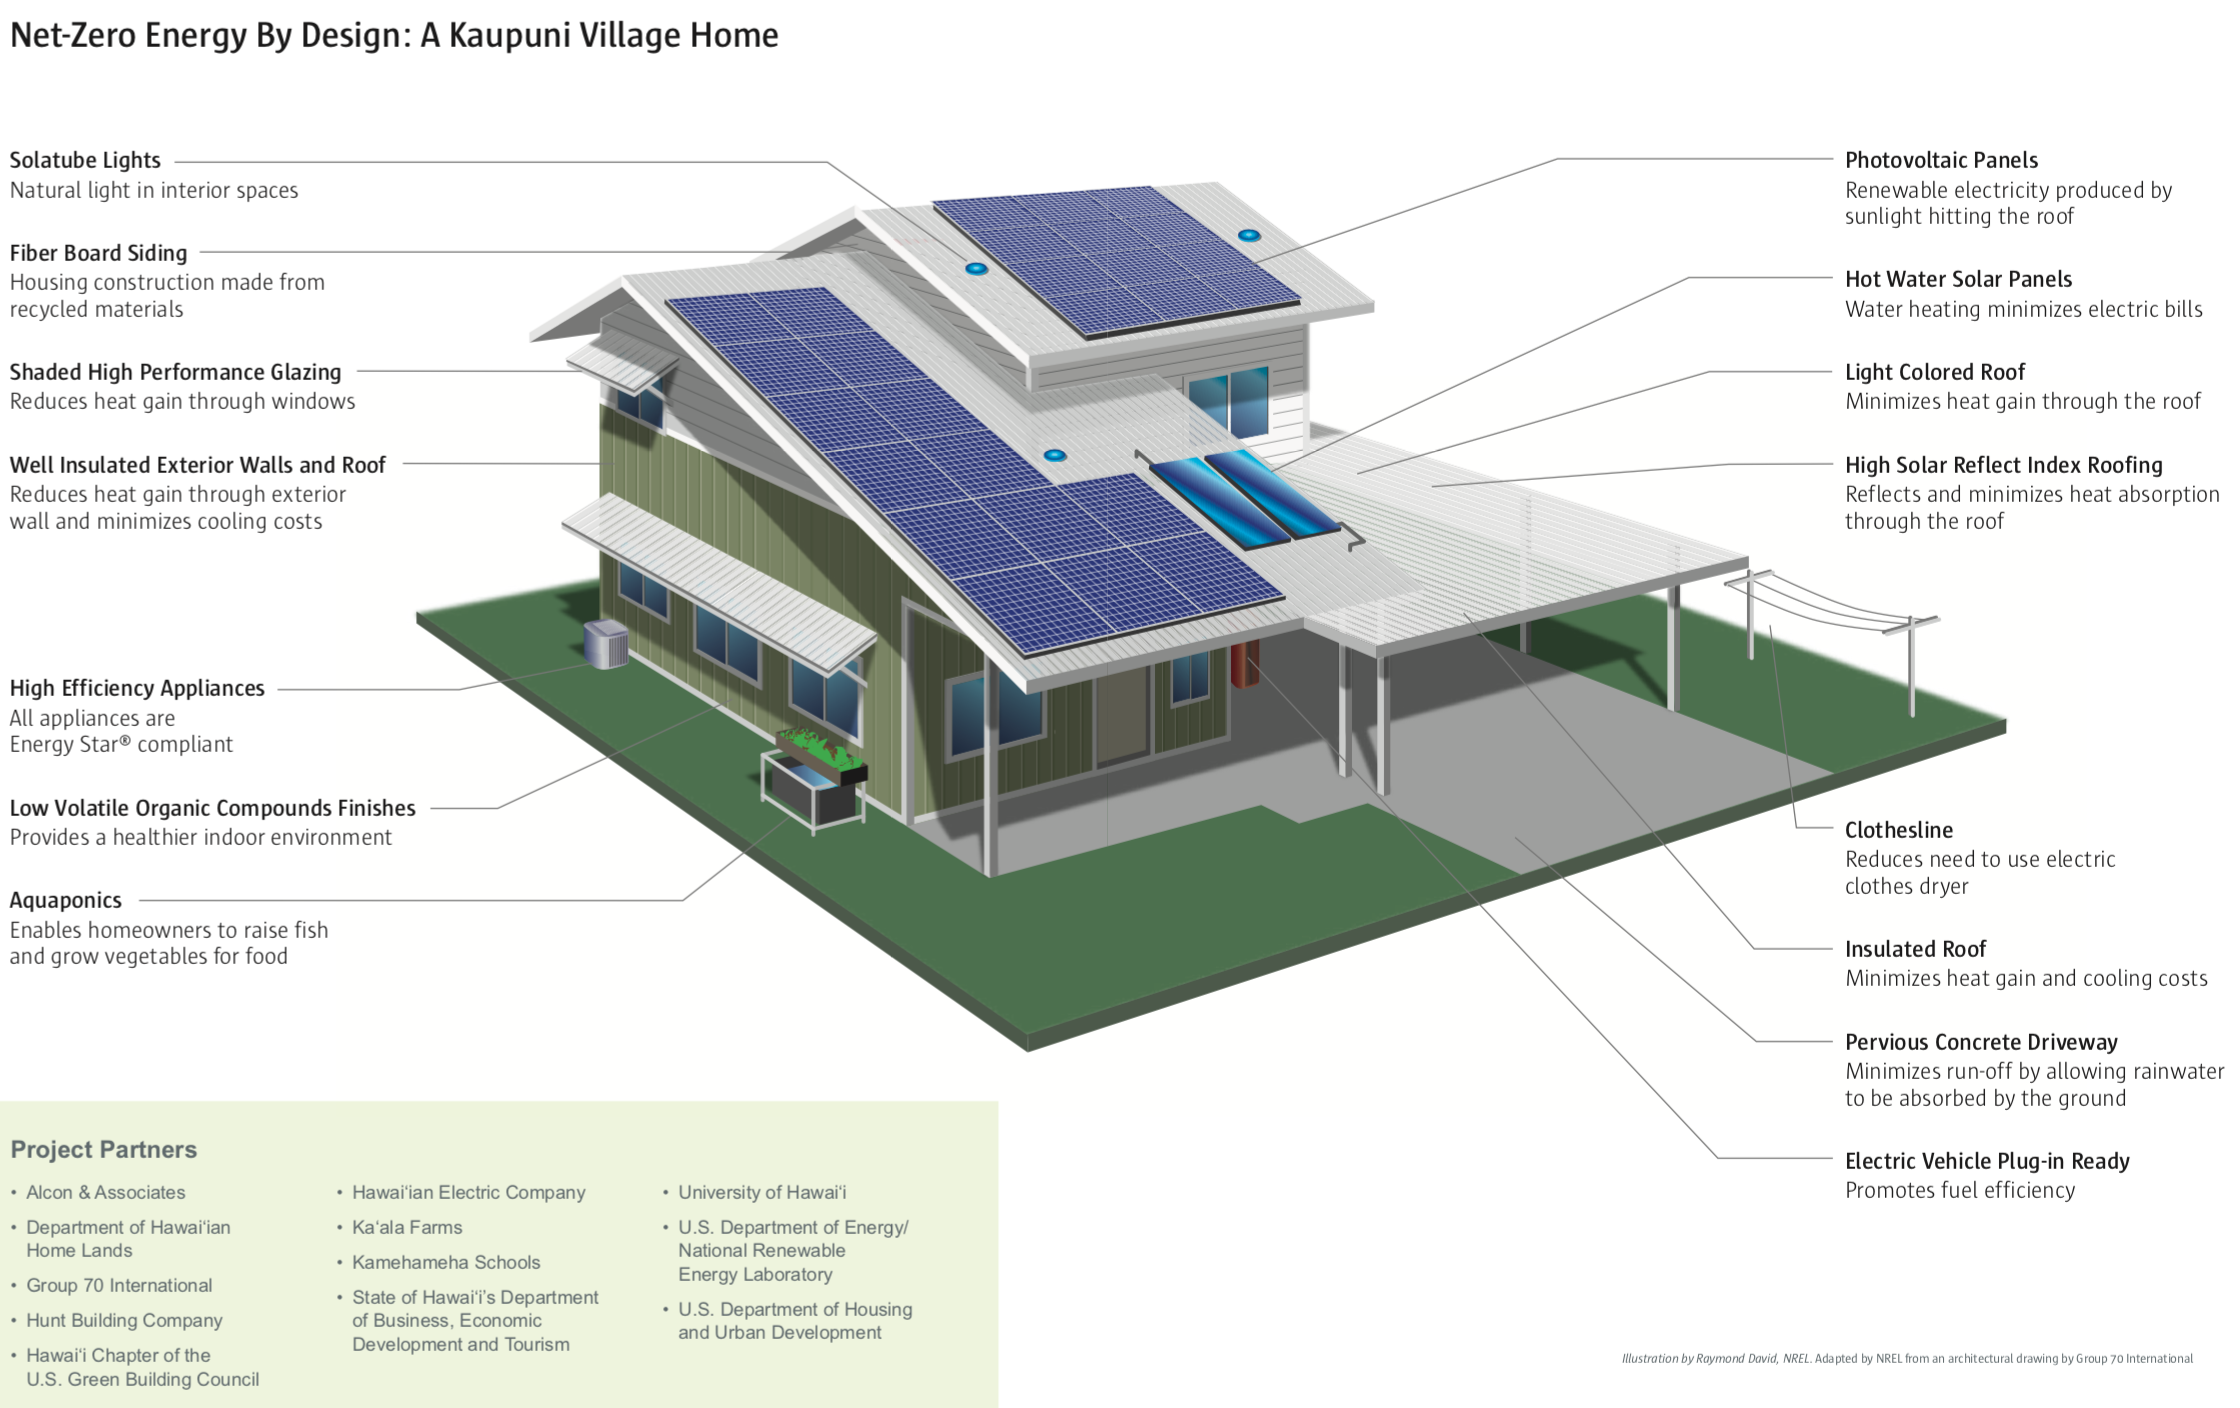 The Truth About Net-Zero Energy Affordable Housings - Green ... on passive home design plans, icf home design plans, small zero energy house plans, pallet house design plans, zero entry home plans, net zero energy house plans, green home design plans, smart house plans, small 1.5 story house plans, earth house sheltered floor plans, green home building plans, earth berm home plans, sustainable home design plans, off-grid home design plans, geothermal home design plans, low energy house plans, residential home design plans, simple home design plans,